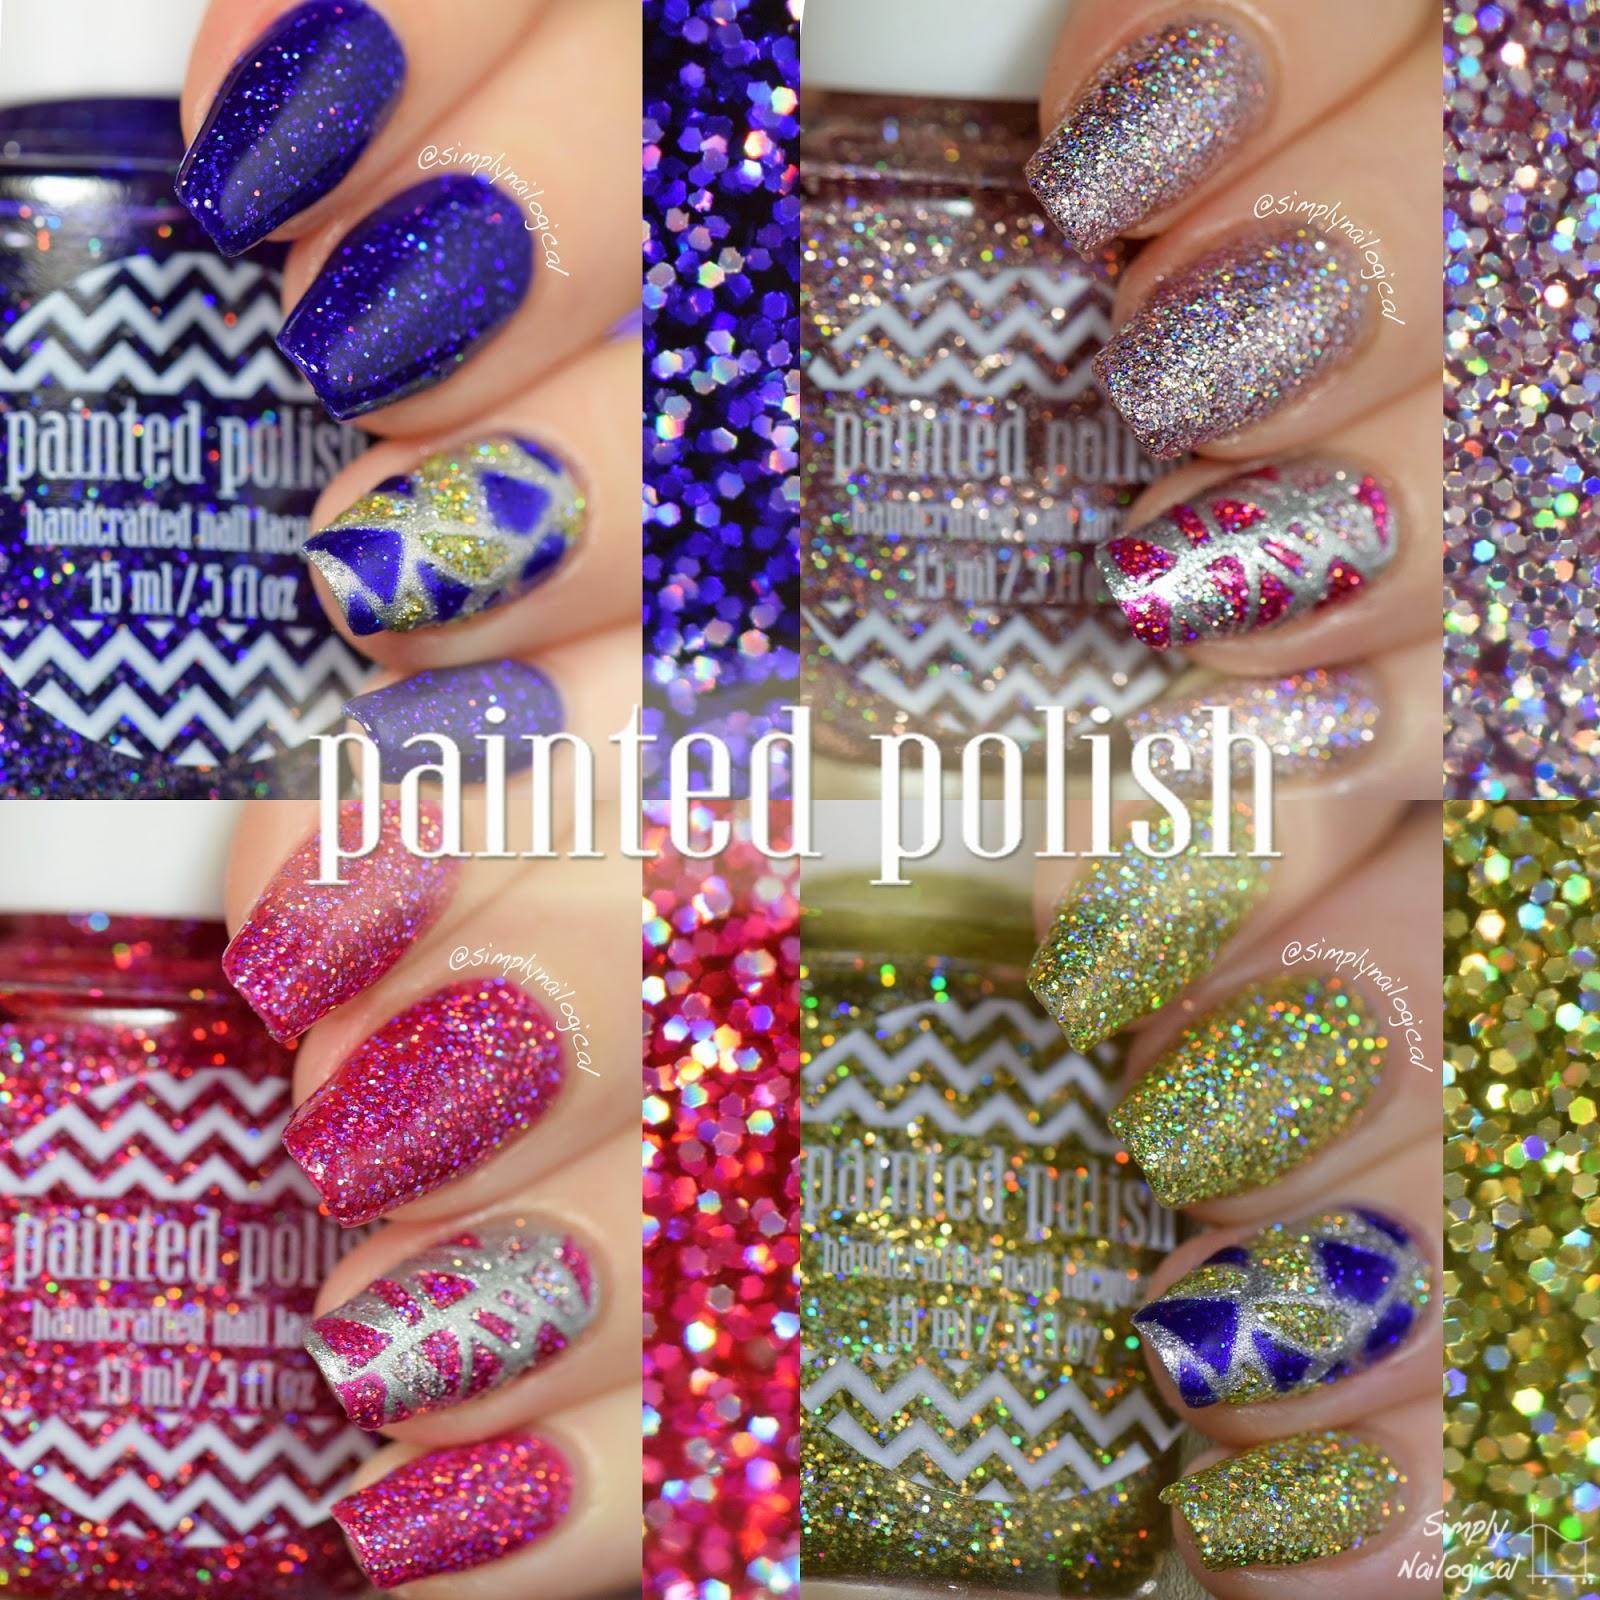 Painted Polish holo glitters